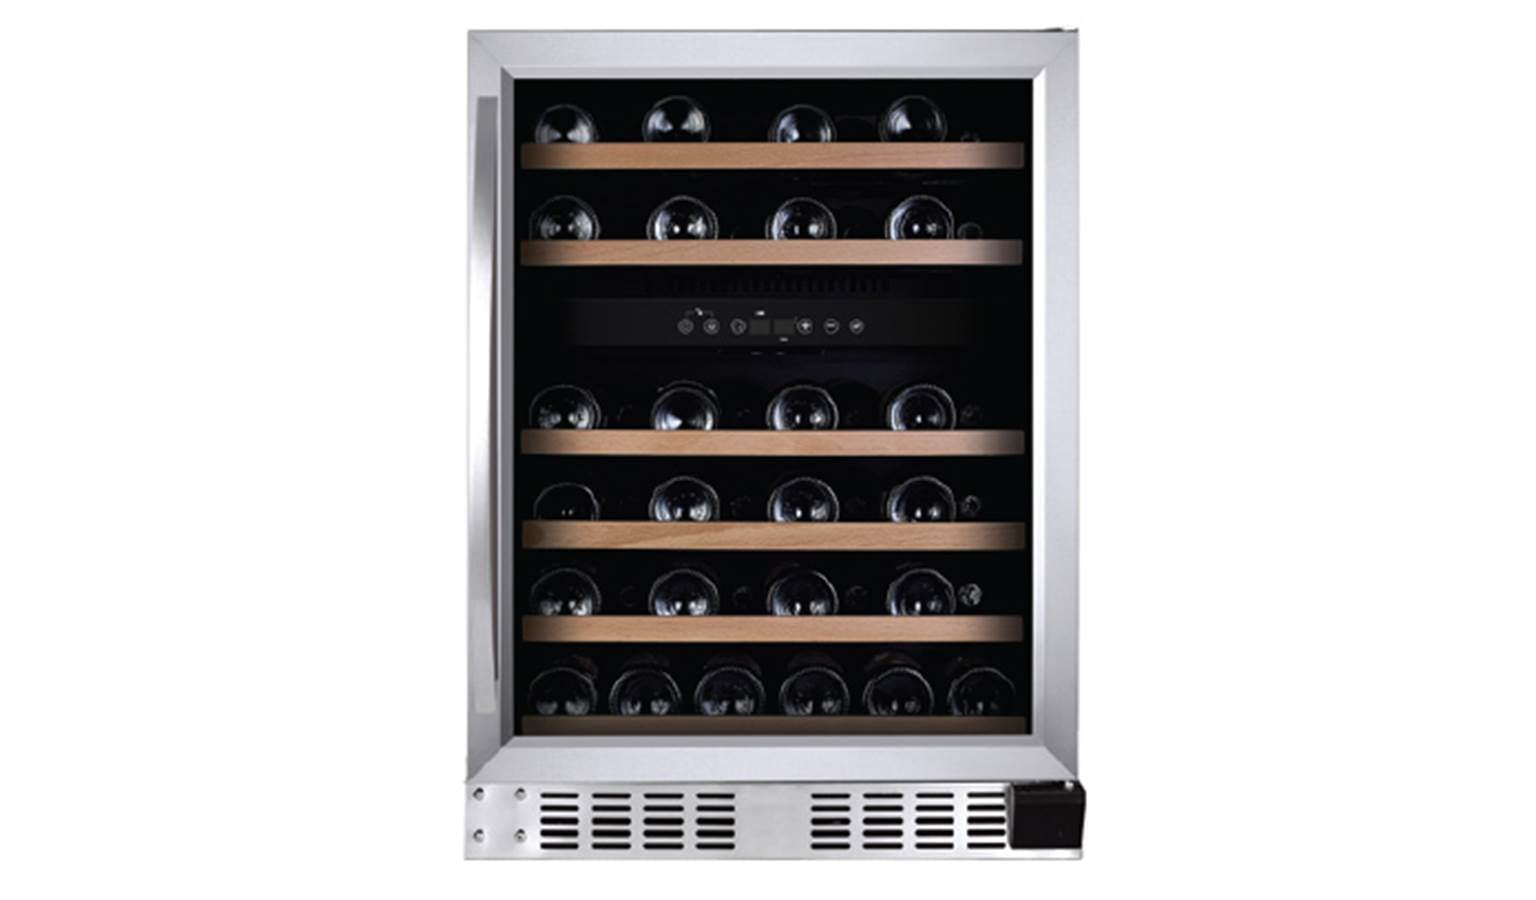 Teka RV 46D Wine Chiller